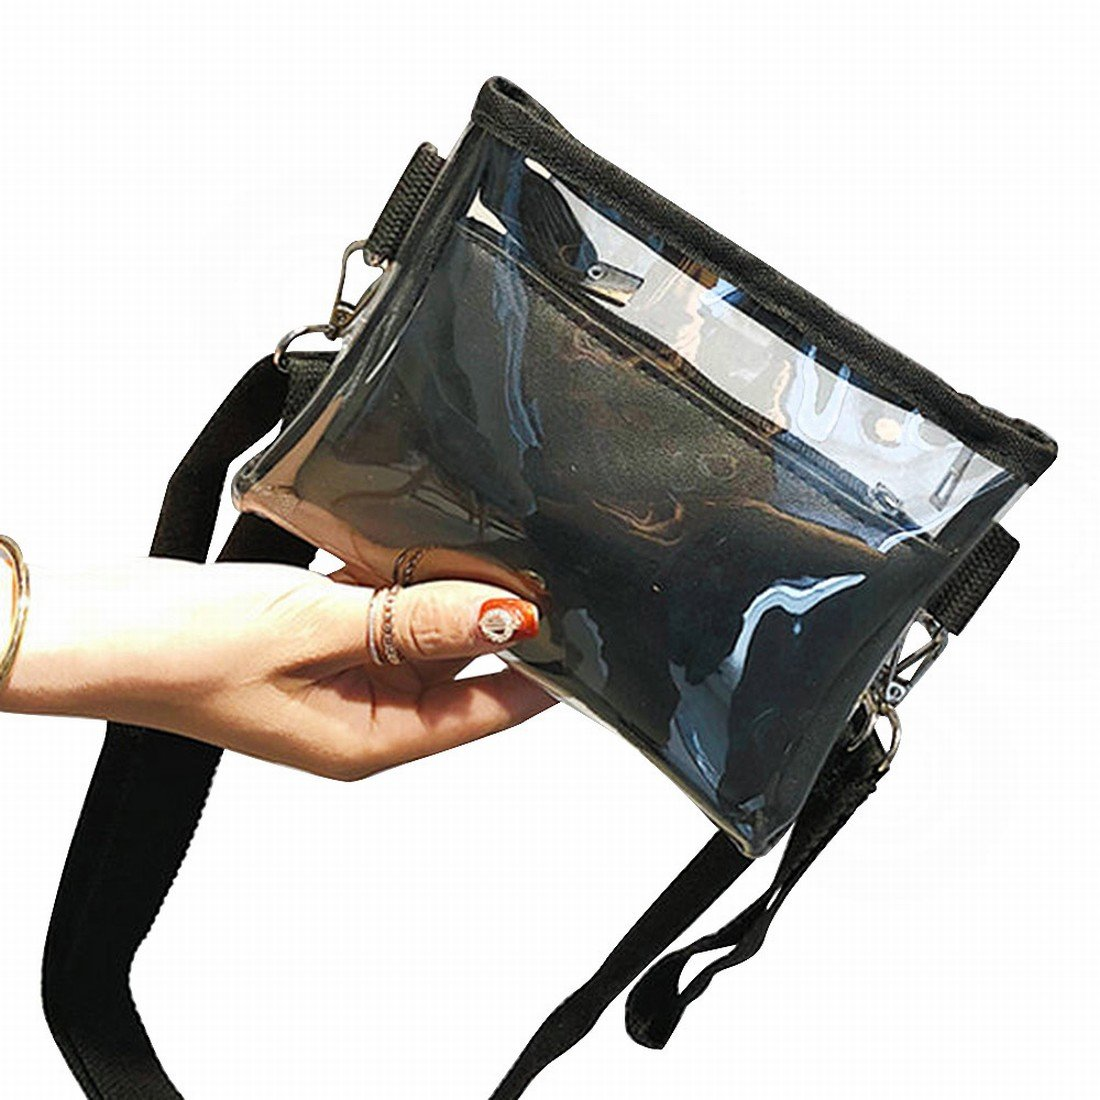 Amazon.com: Transparente Moda para niña Crossbody Bolsa ...